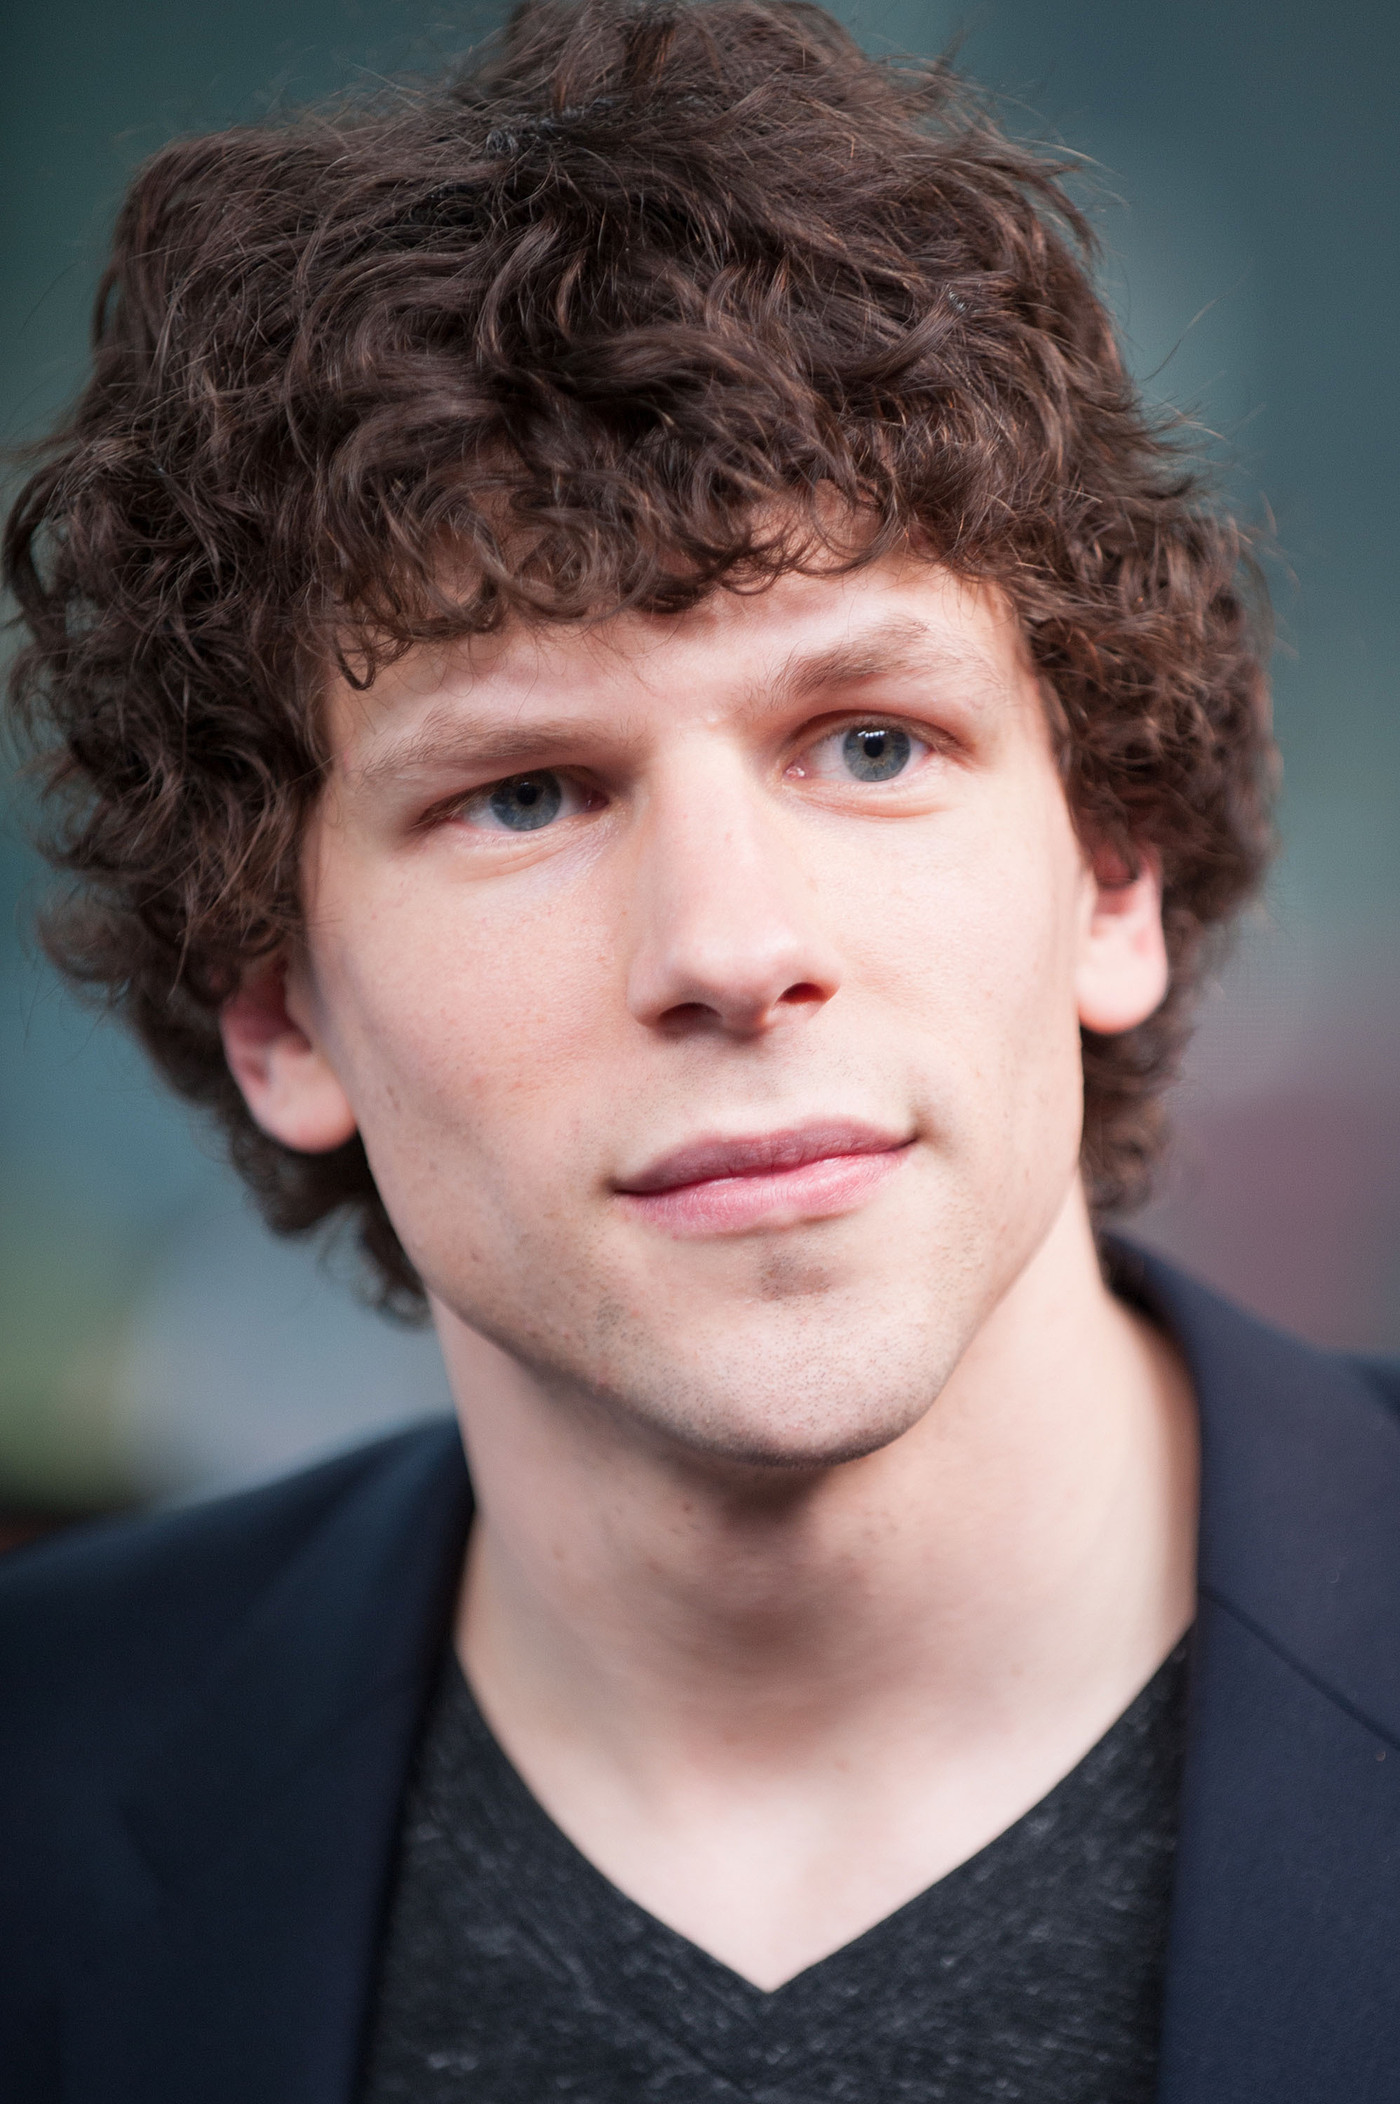 The Movie Jesse Eisenberg Has 'Seen A Million Times' : NPR Jesse Eisenberg